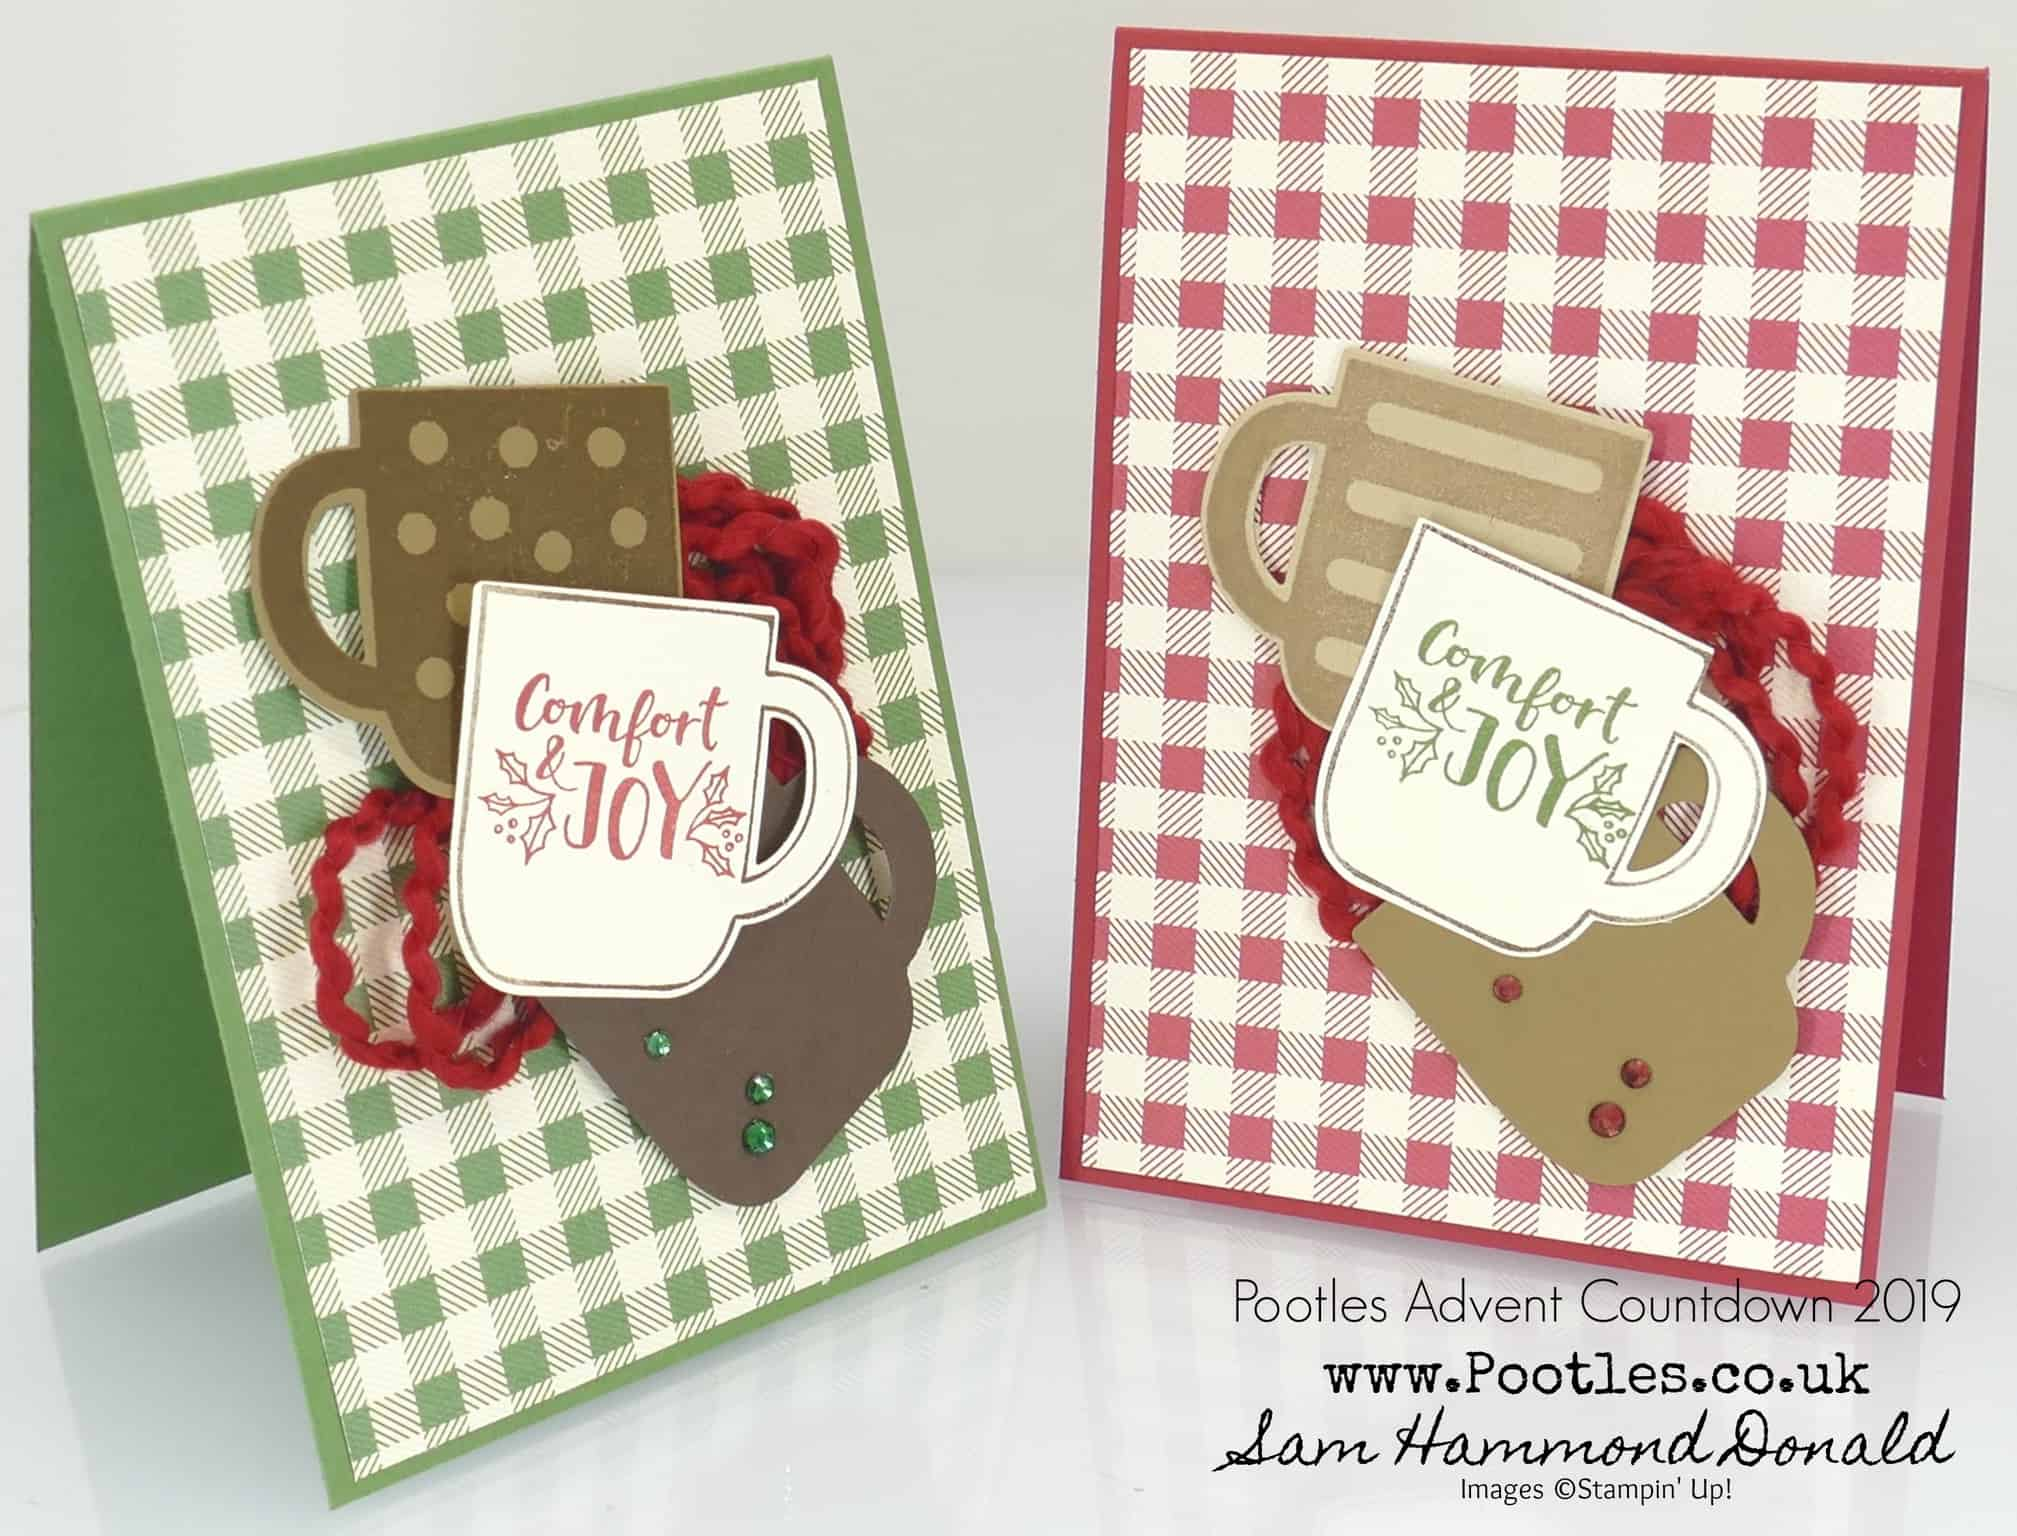 Christmas Countdown 2019.Stampin Up 1 Demonstrator Pootles Pootles Advent